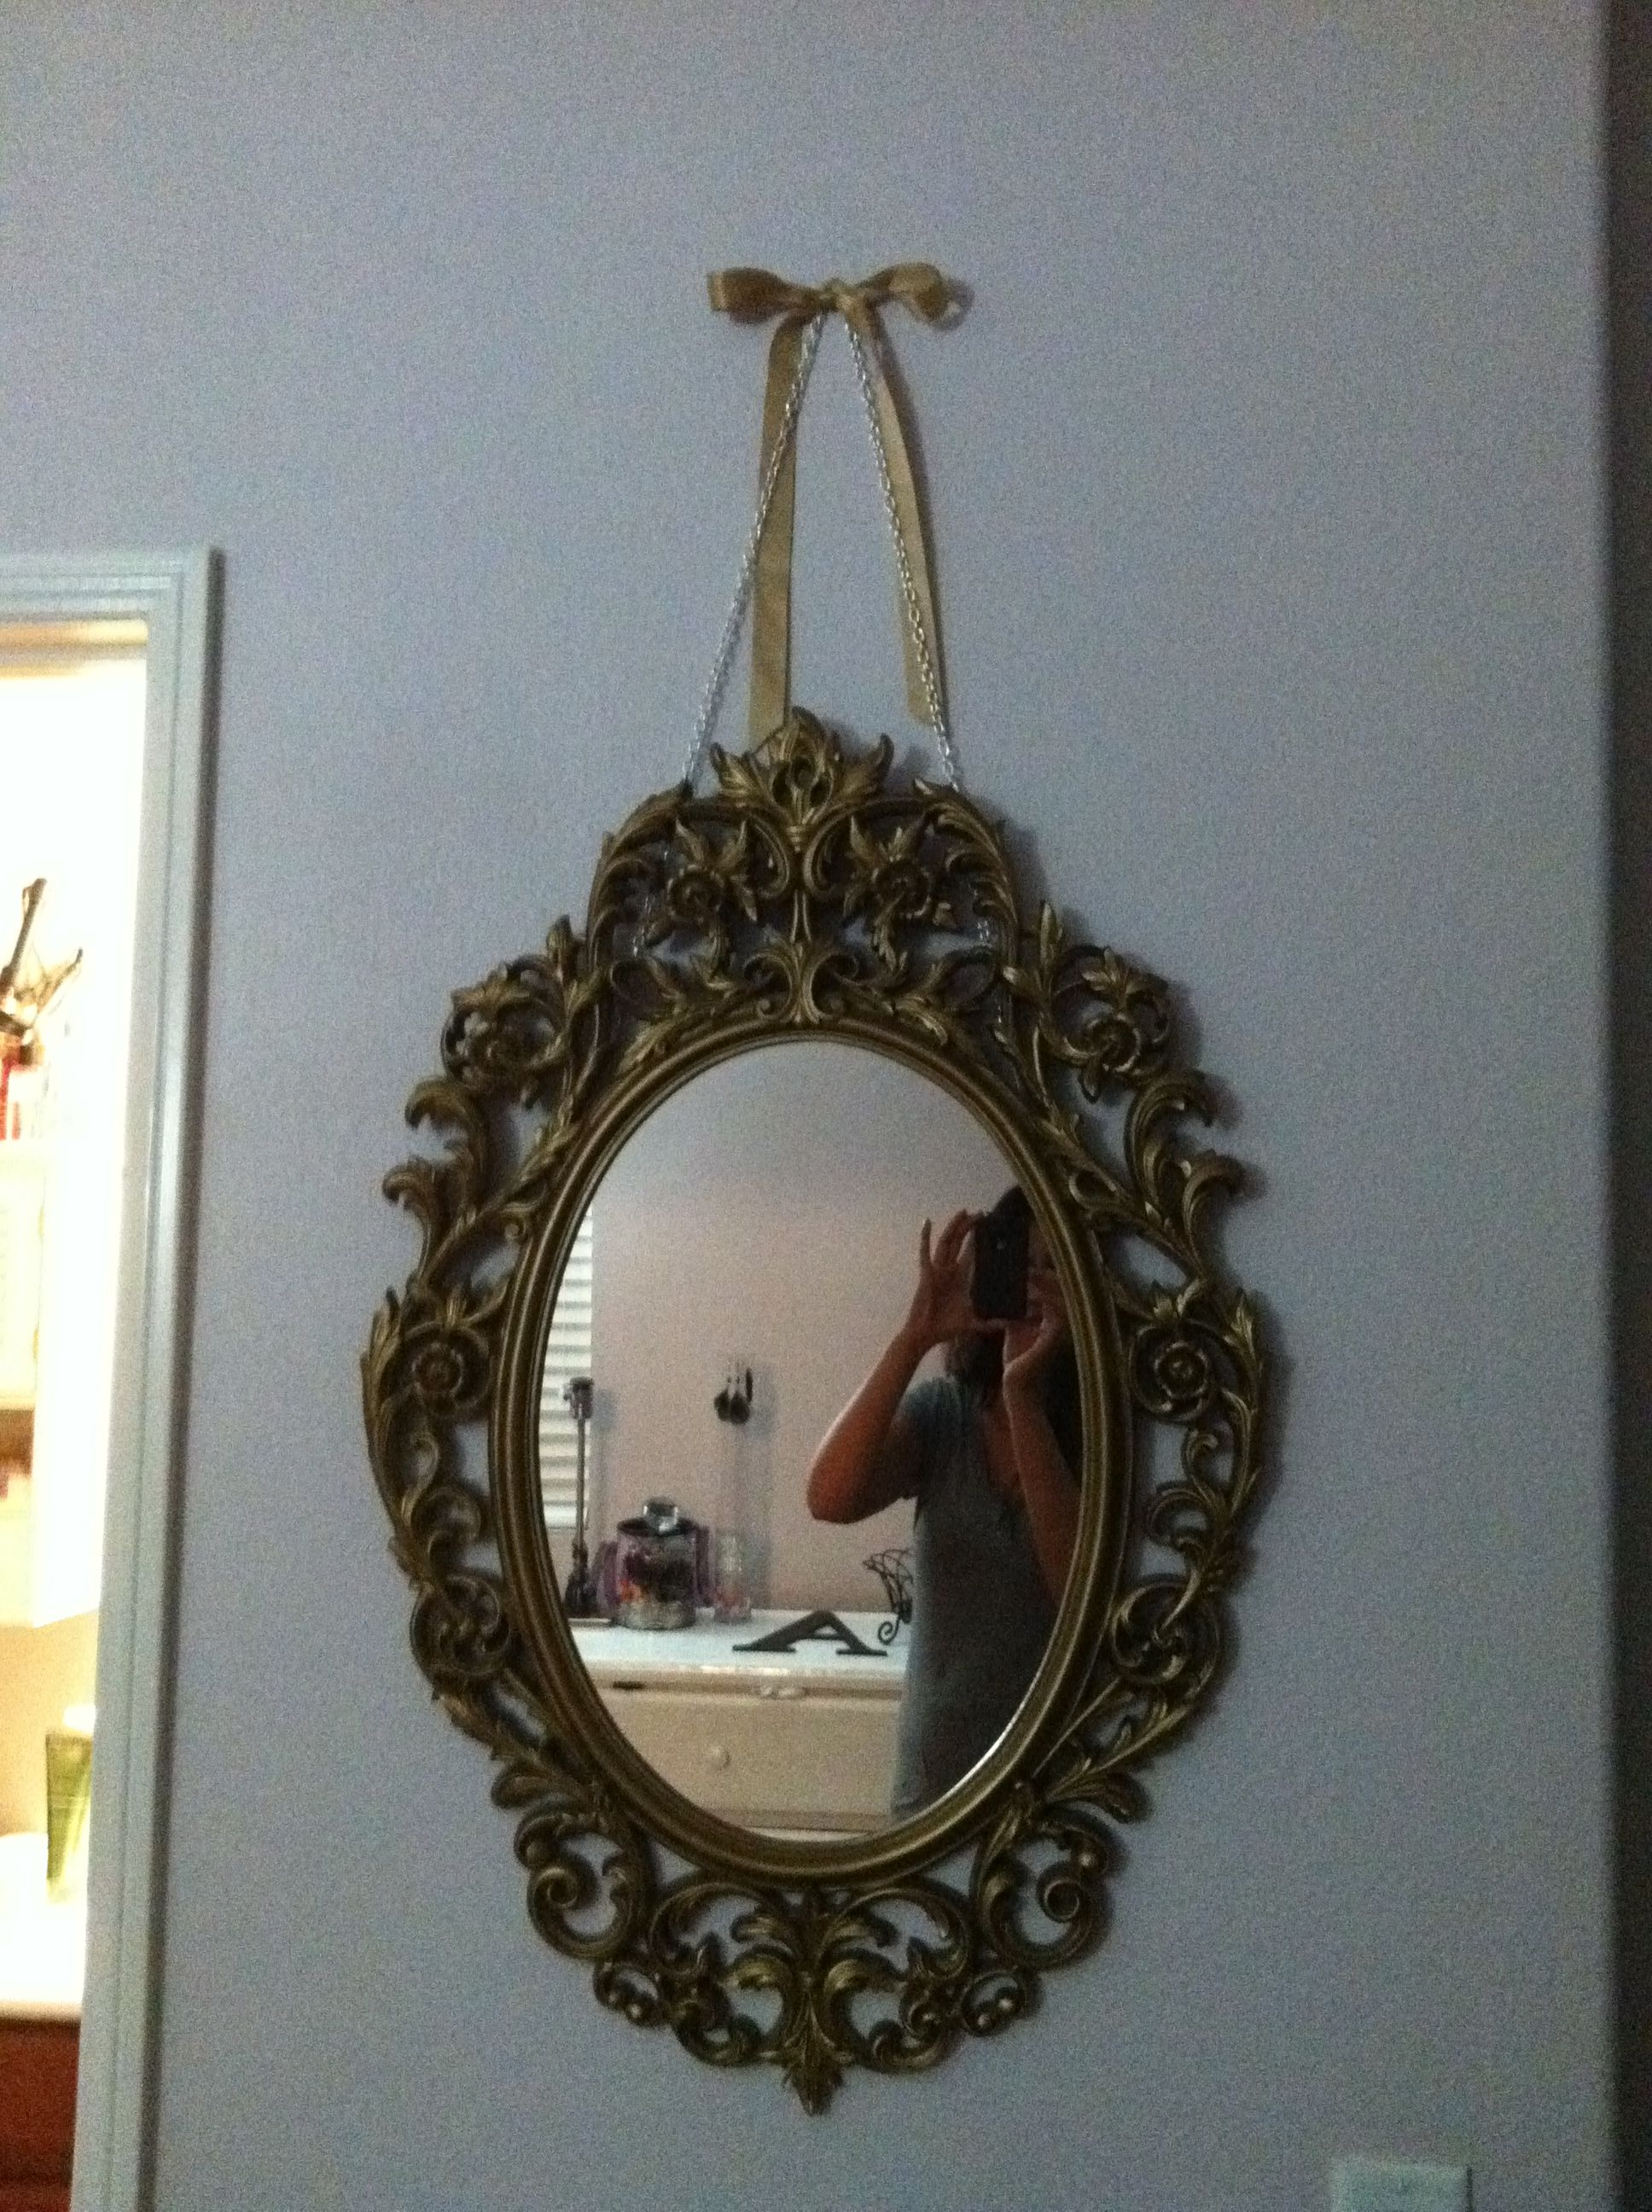 Scored this mirror at the Goodwill. I was not thrilled about the gold, but when I hung it up in my daughters room it was perfect. Hung with necklace chain and added a gold ribbon bow. <3